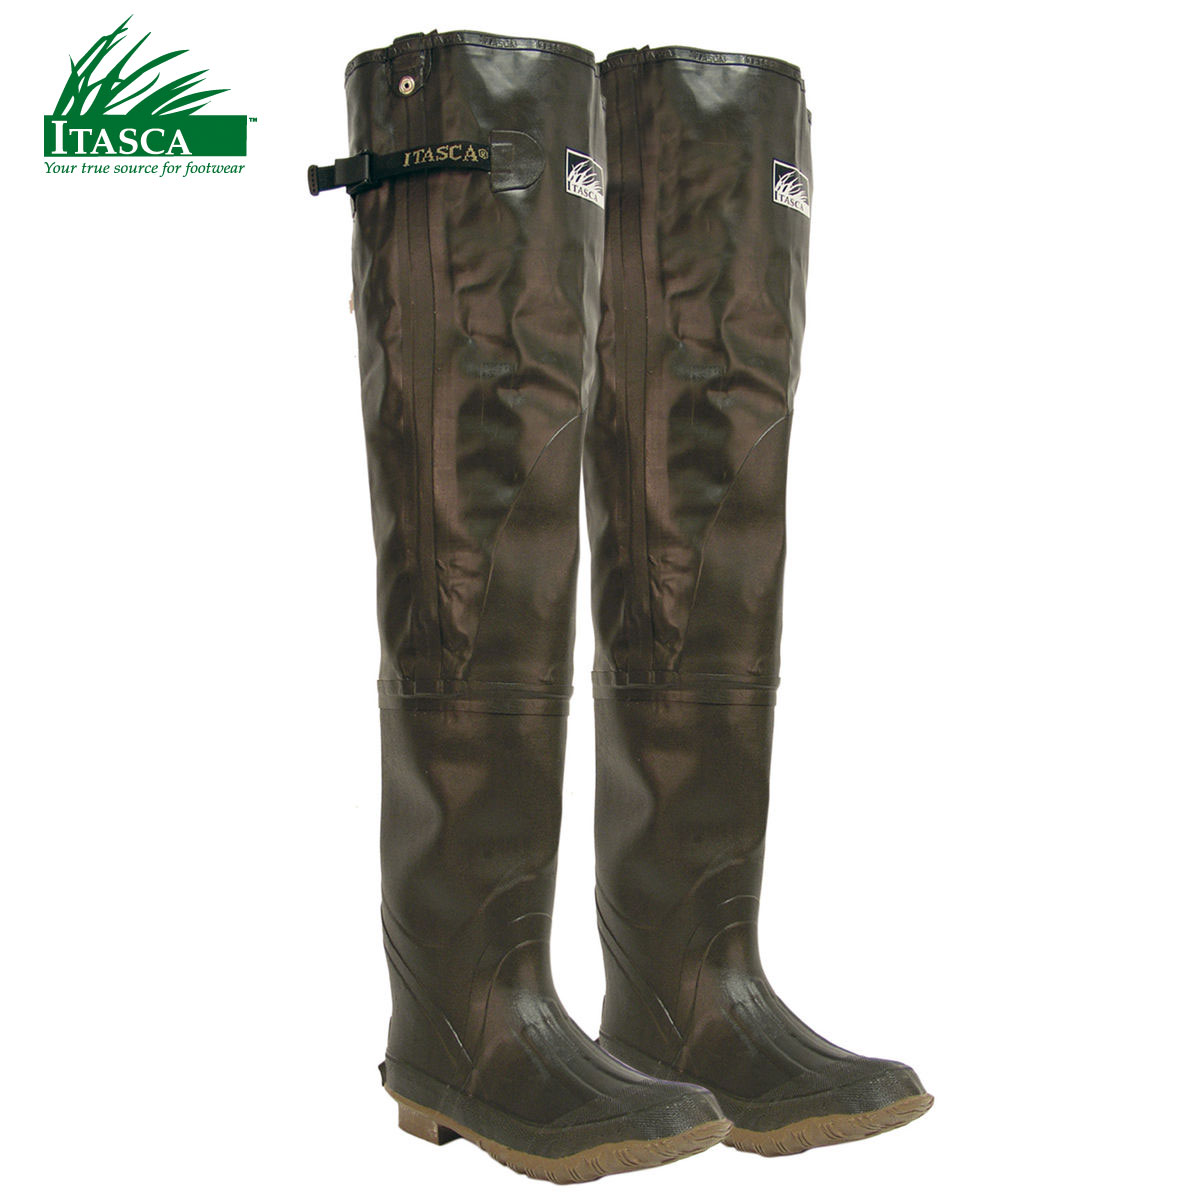 Itasca Rubber Men's Hip Waders (10)- Brown